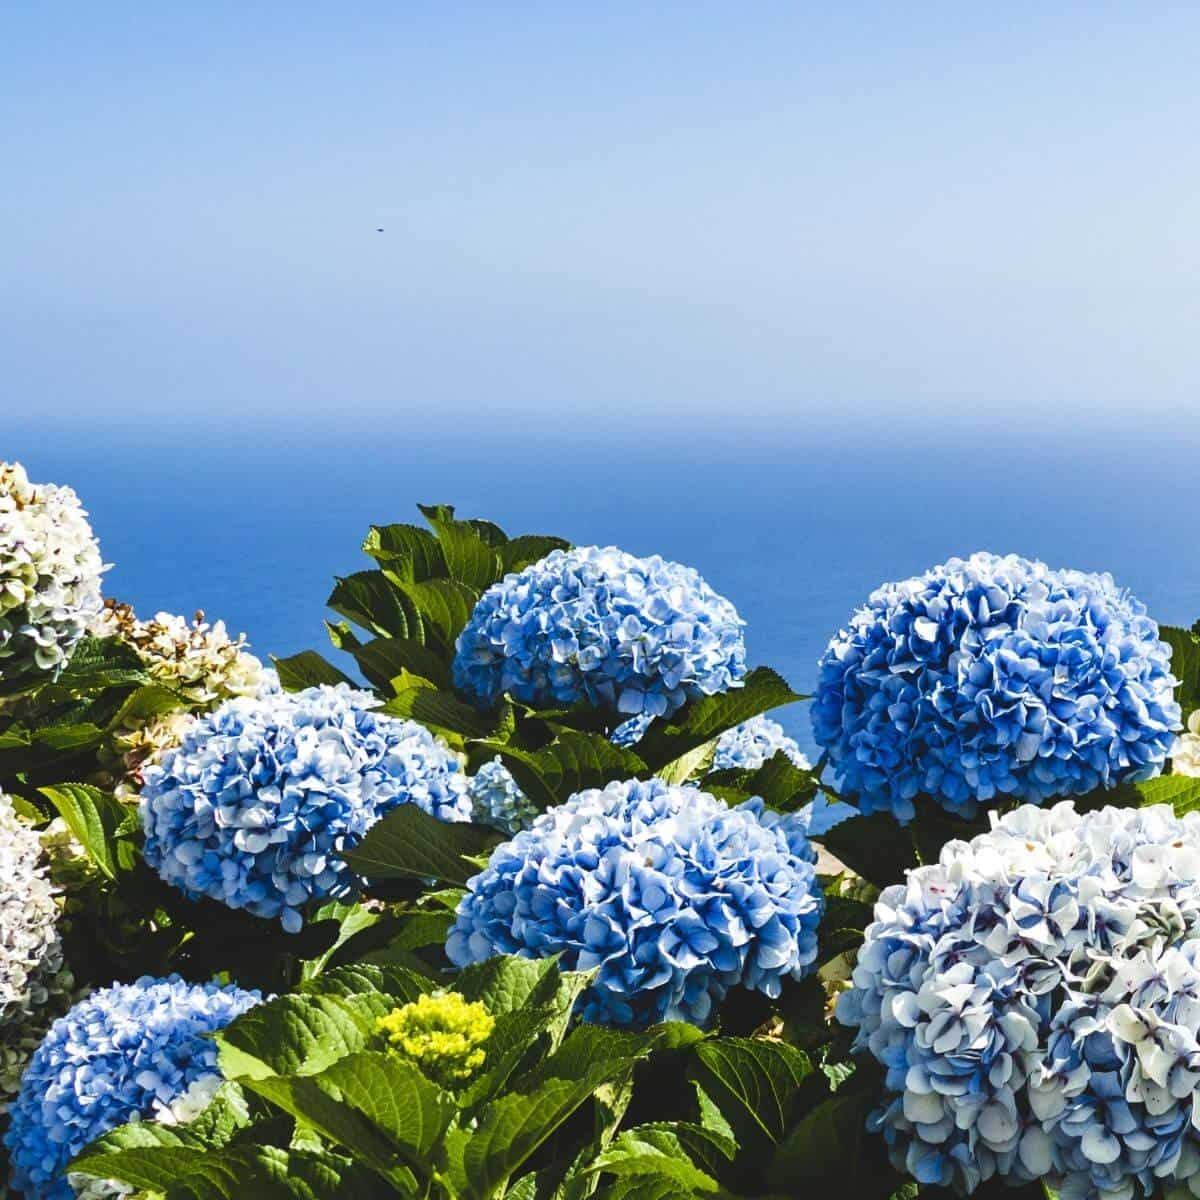 Blue hydrangeas with the ocean in the background.